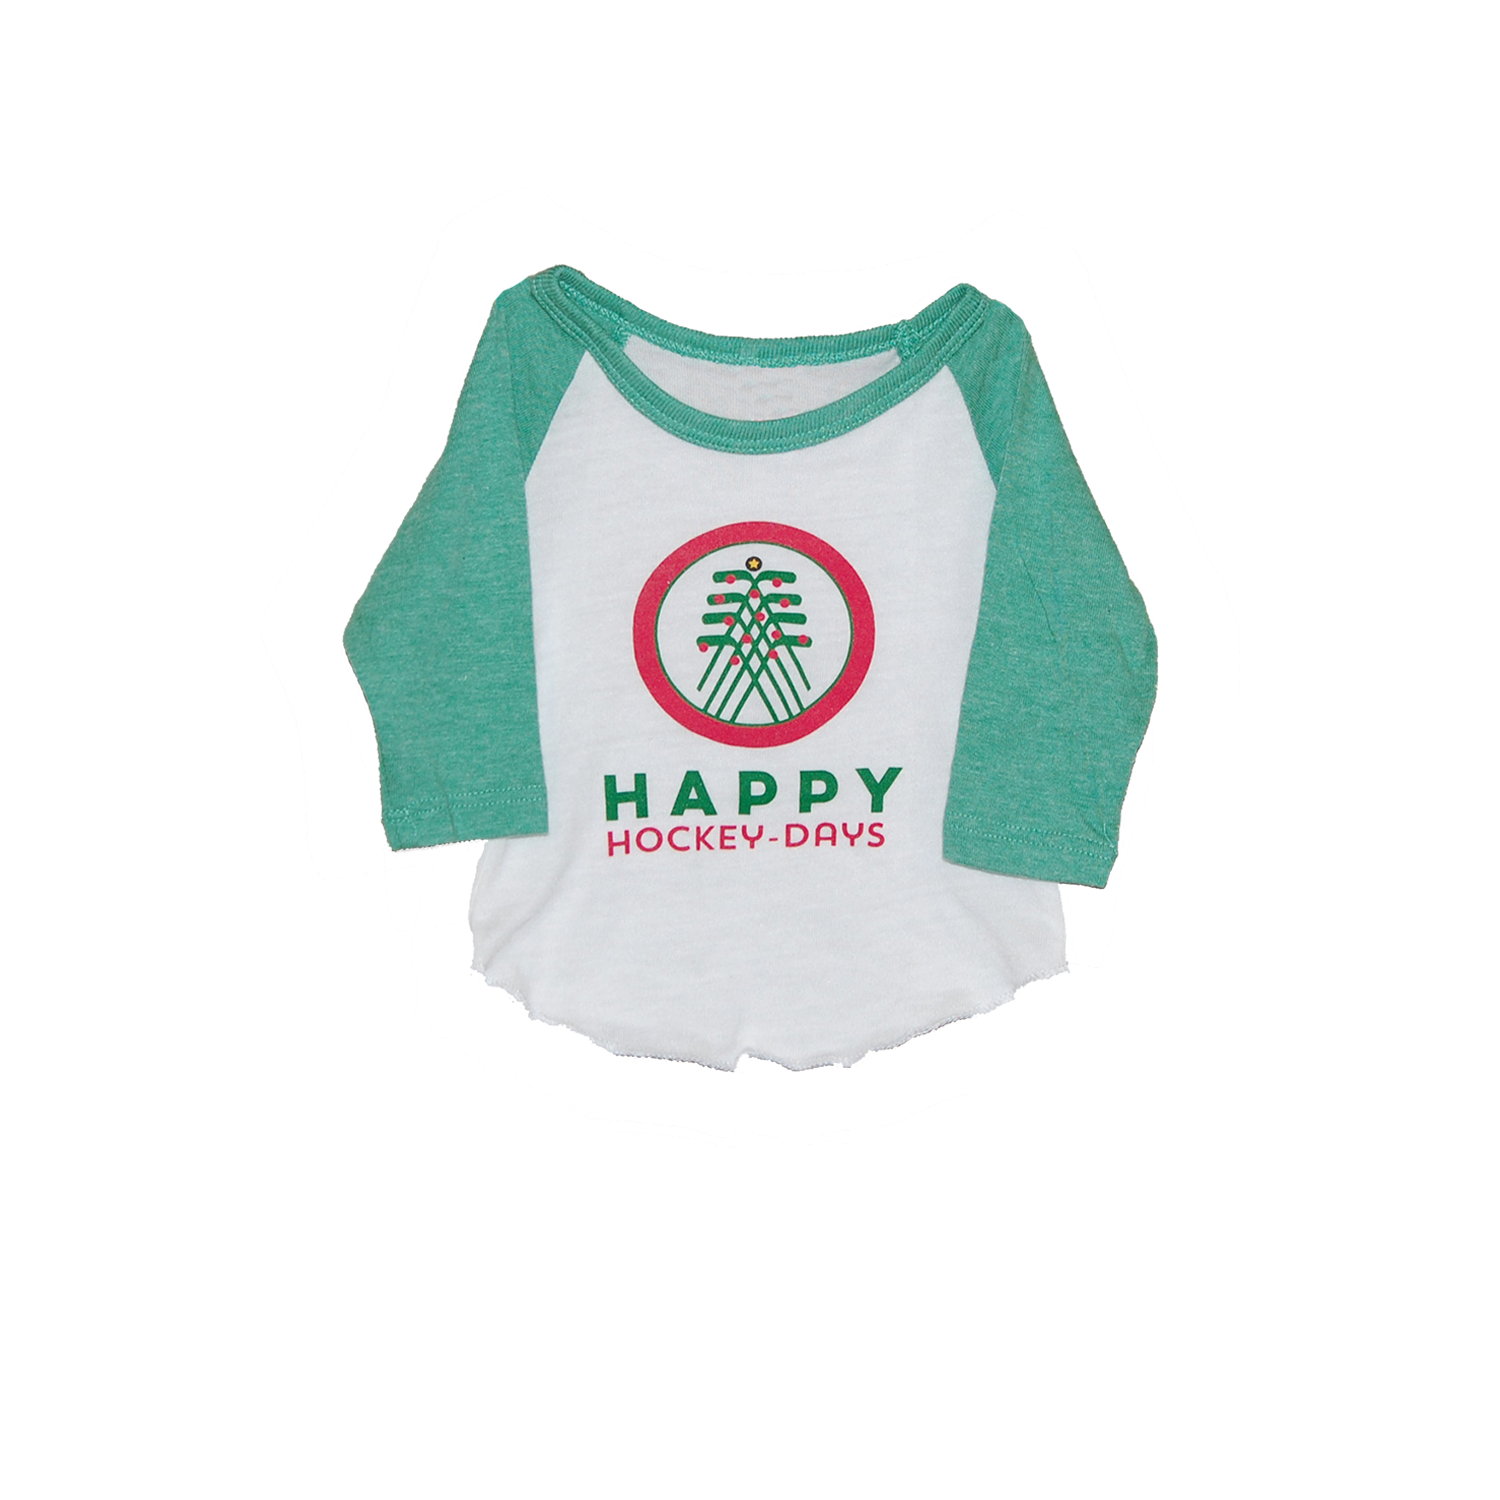 Happy Hockey Days - Toddler & Infant